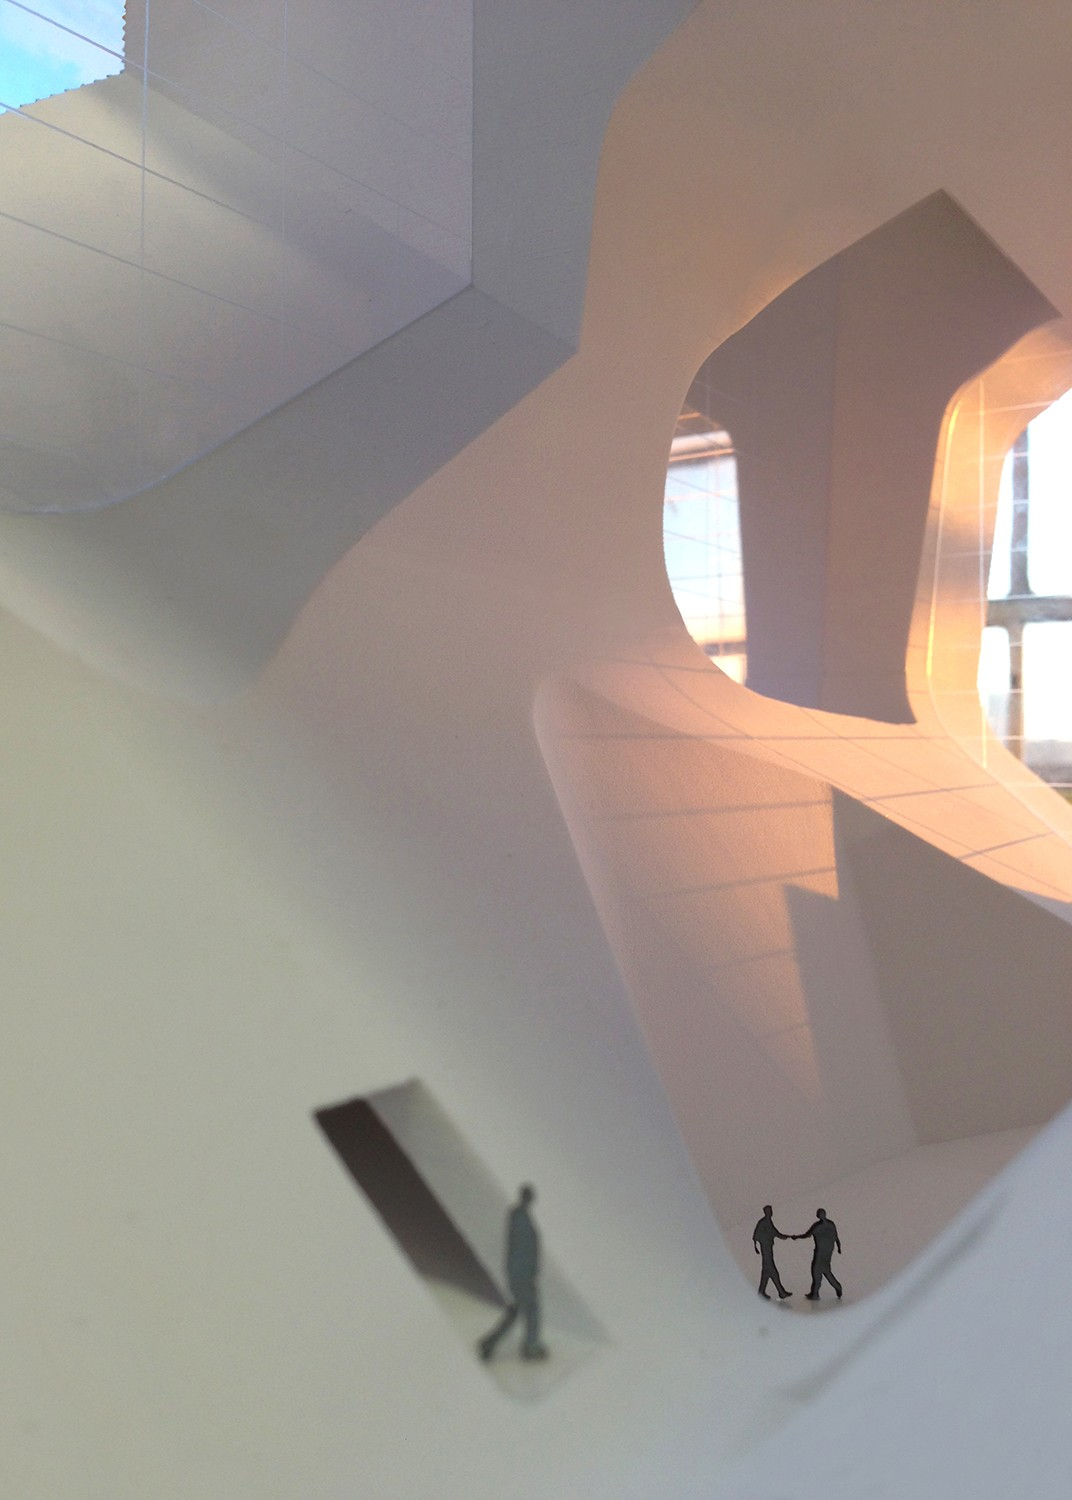 https://s3.us-east-2.amazonaws.com/steven-holl/uploads/projects/project-images/StevenHollArchitects_Tianjin_IMG_1360_WV.jpg